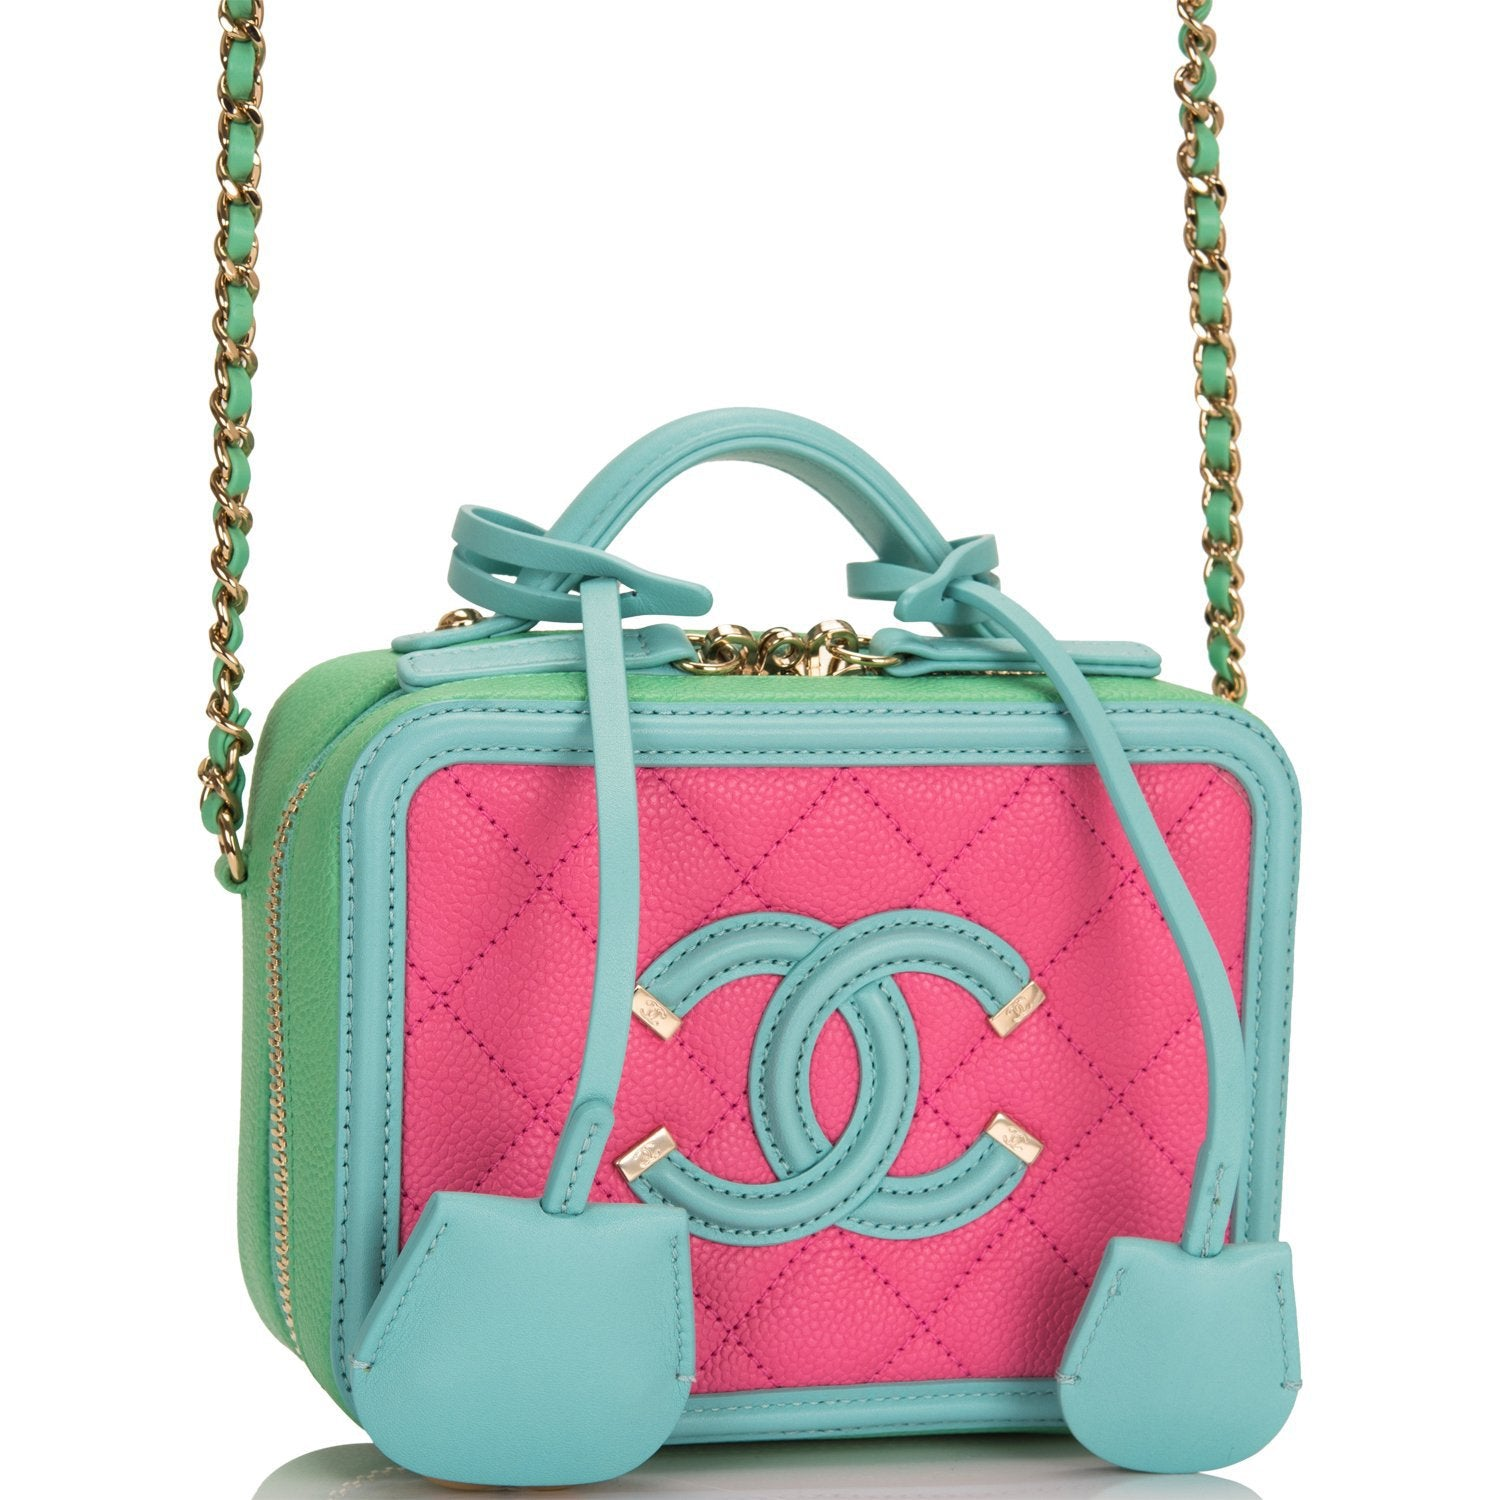 Chanel Pink, Green and Blue Caviar Mini Filigree Vanity Case Bag